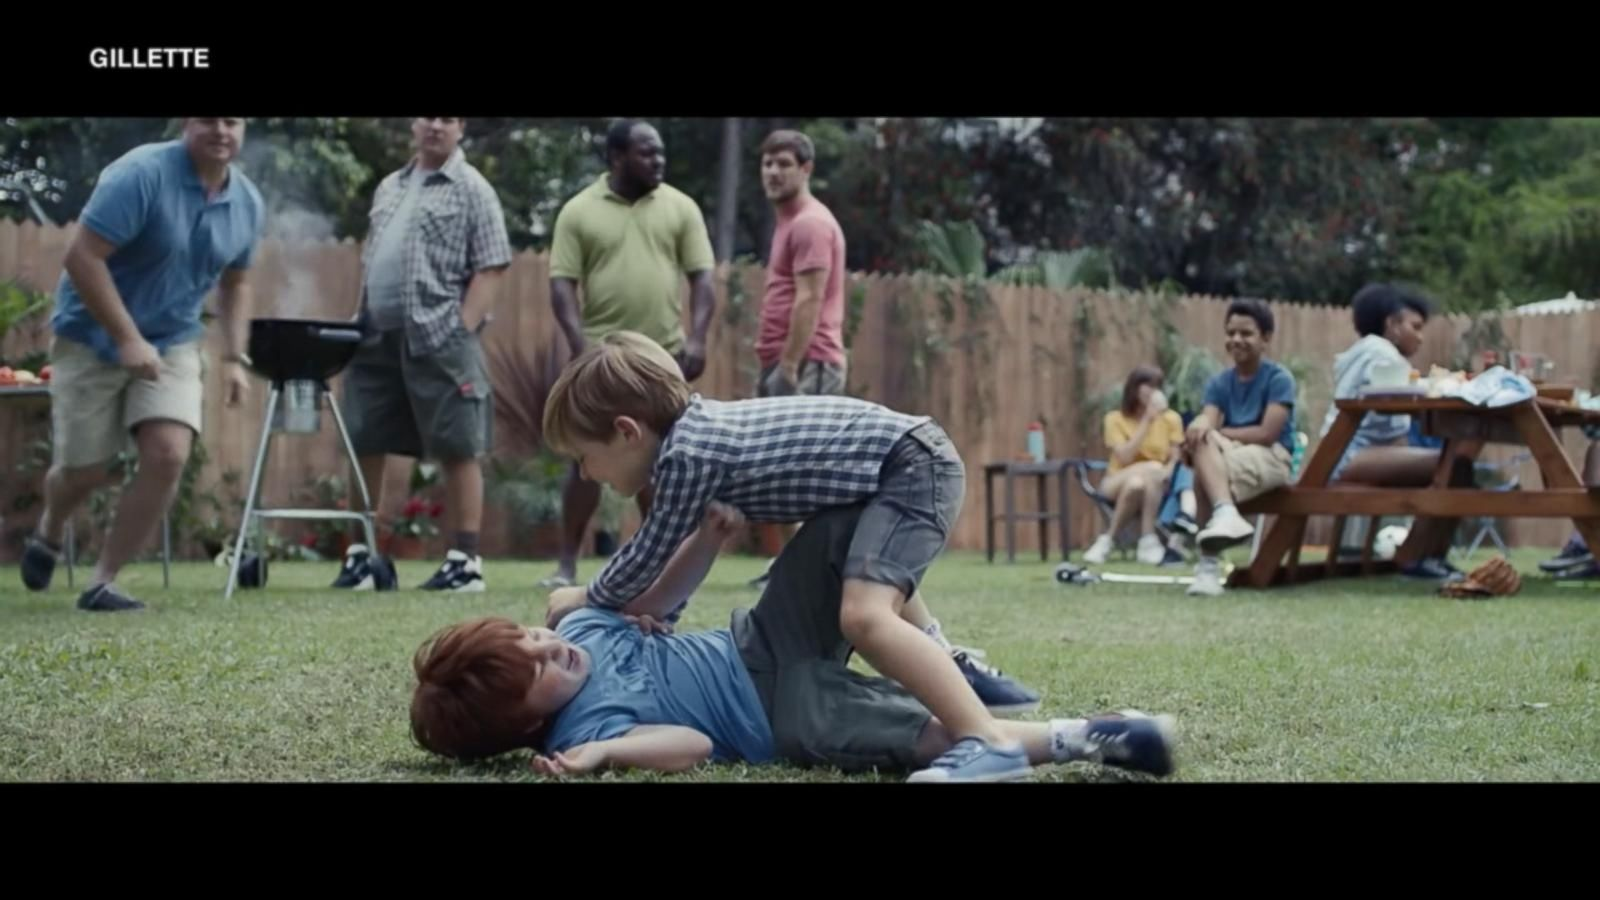 Gillette uses new ad to urge men to get rid of 'toxic